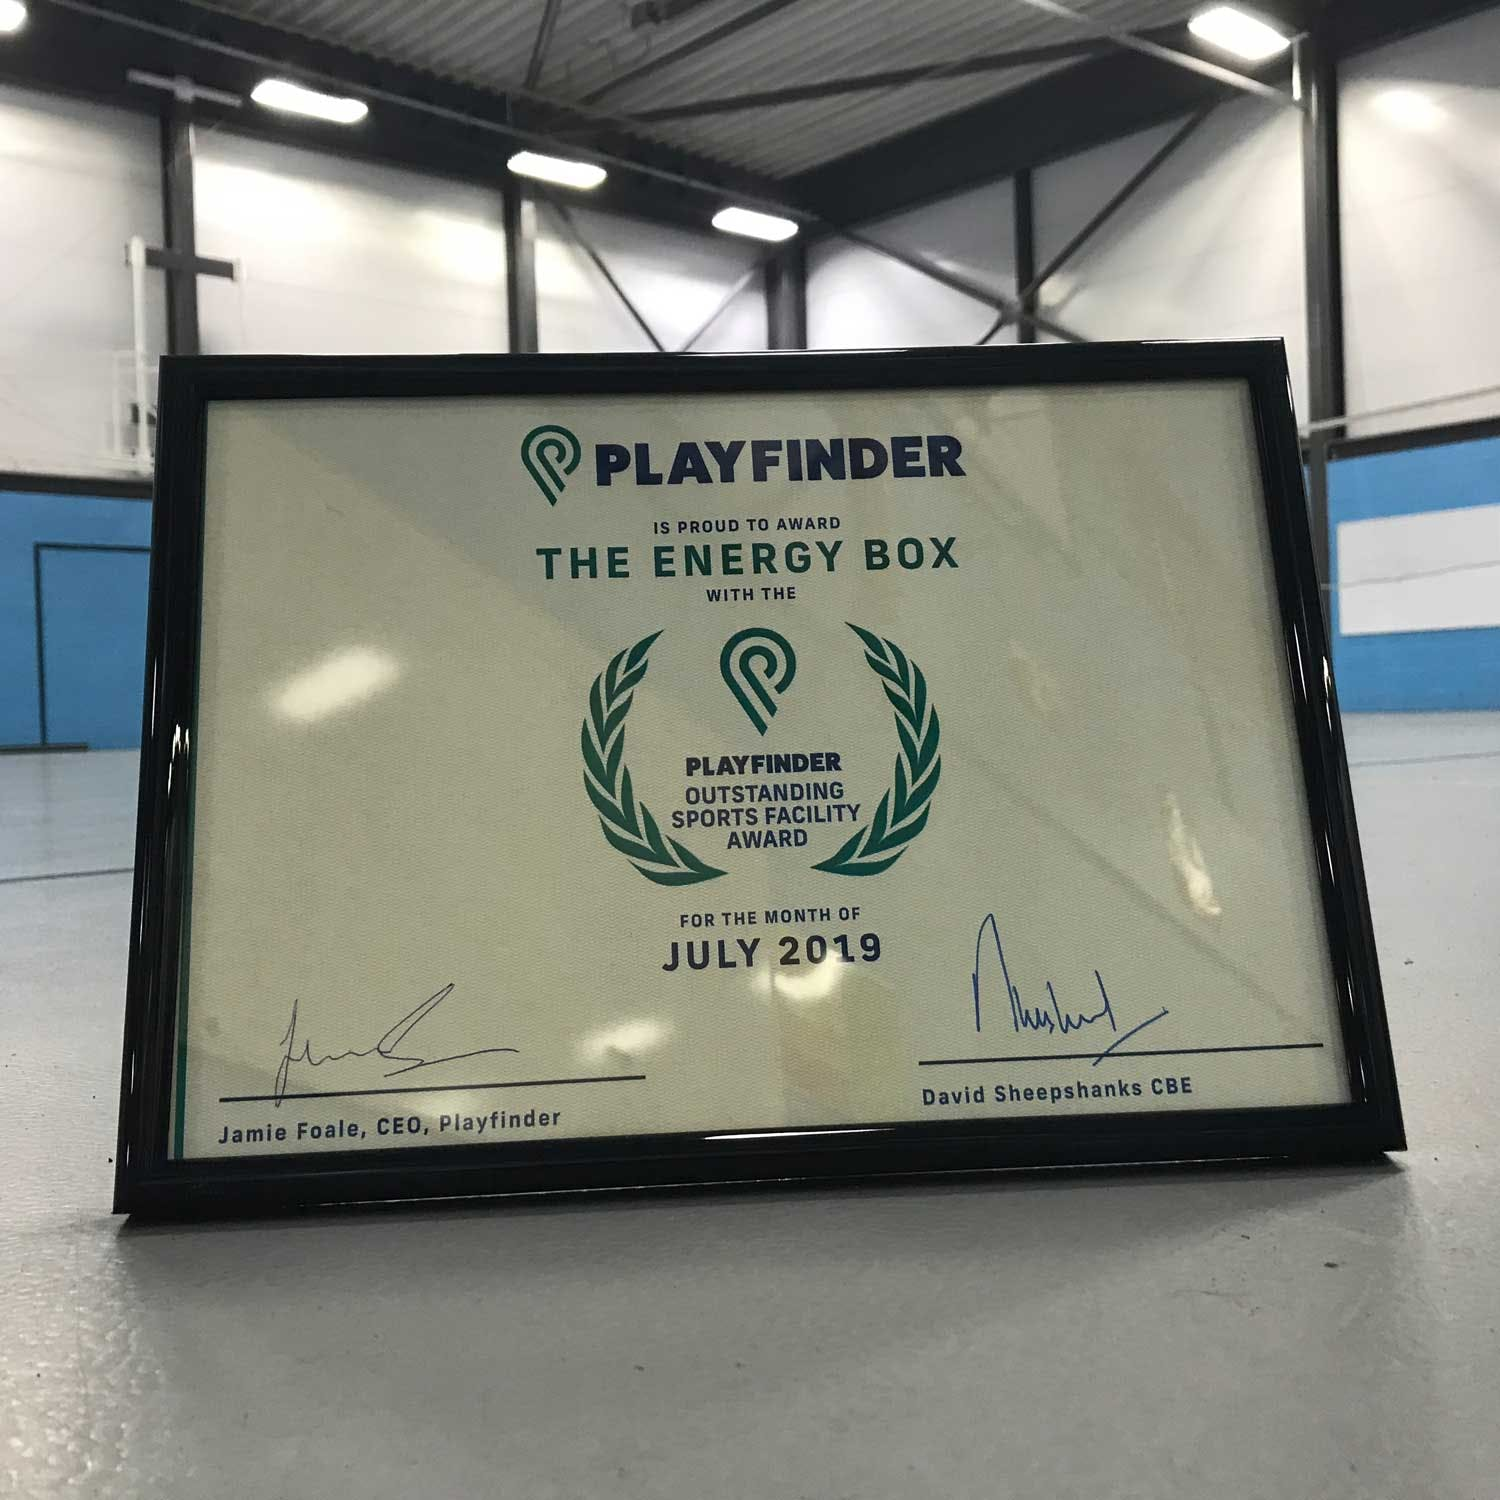 Playfinder Venue Award for The Energy Box